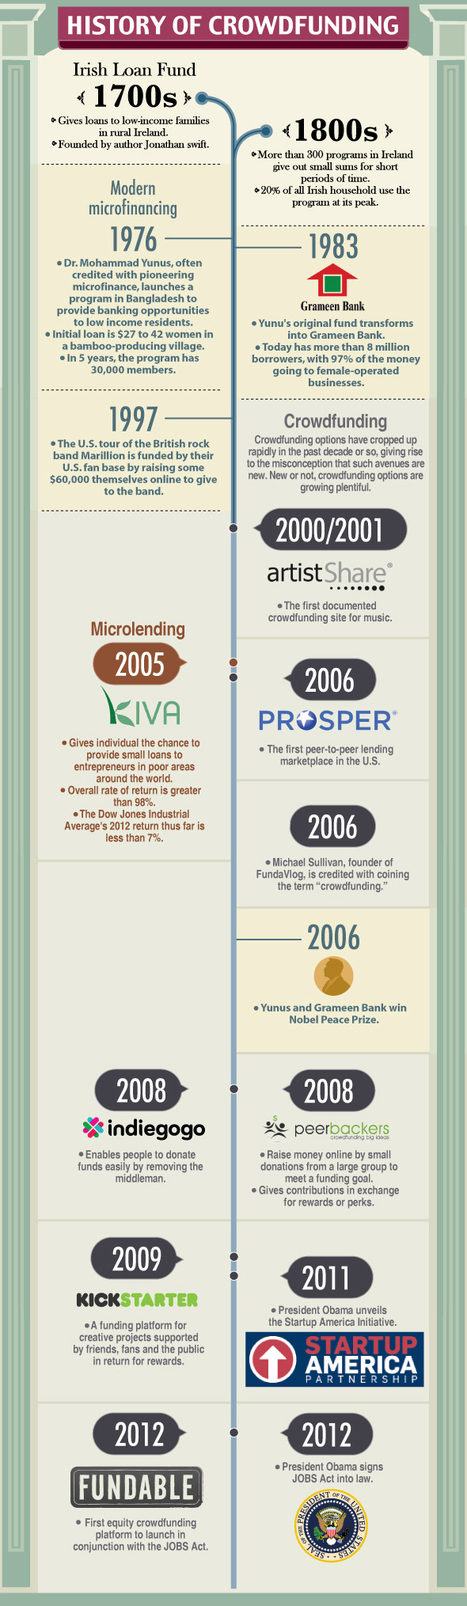 Crowdfunding Infographic – The History of Crowdfunding | The Soho Loft | Crowdfunding World | Scoop.it